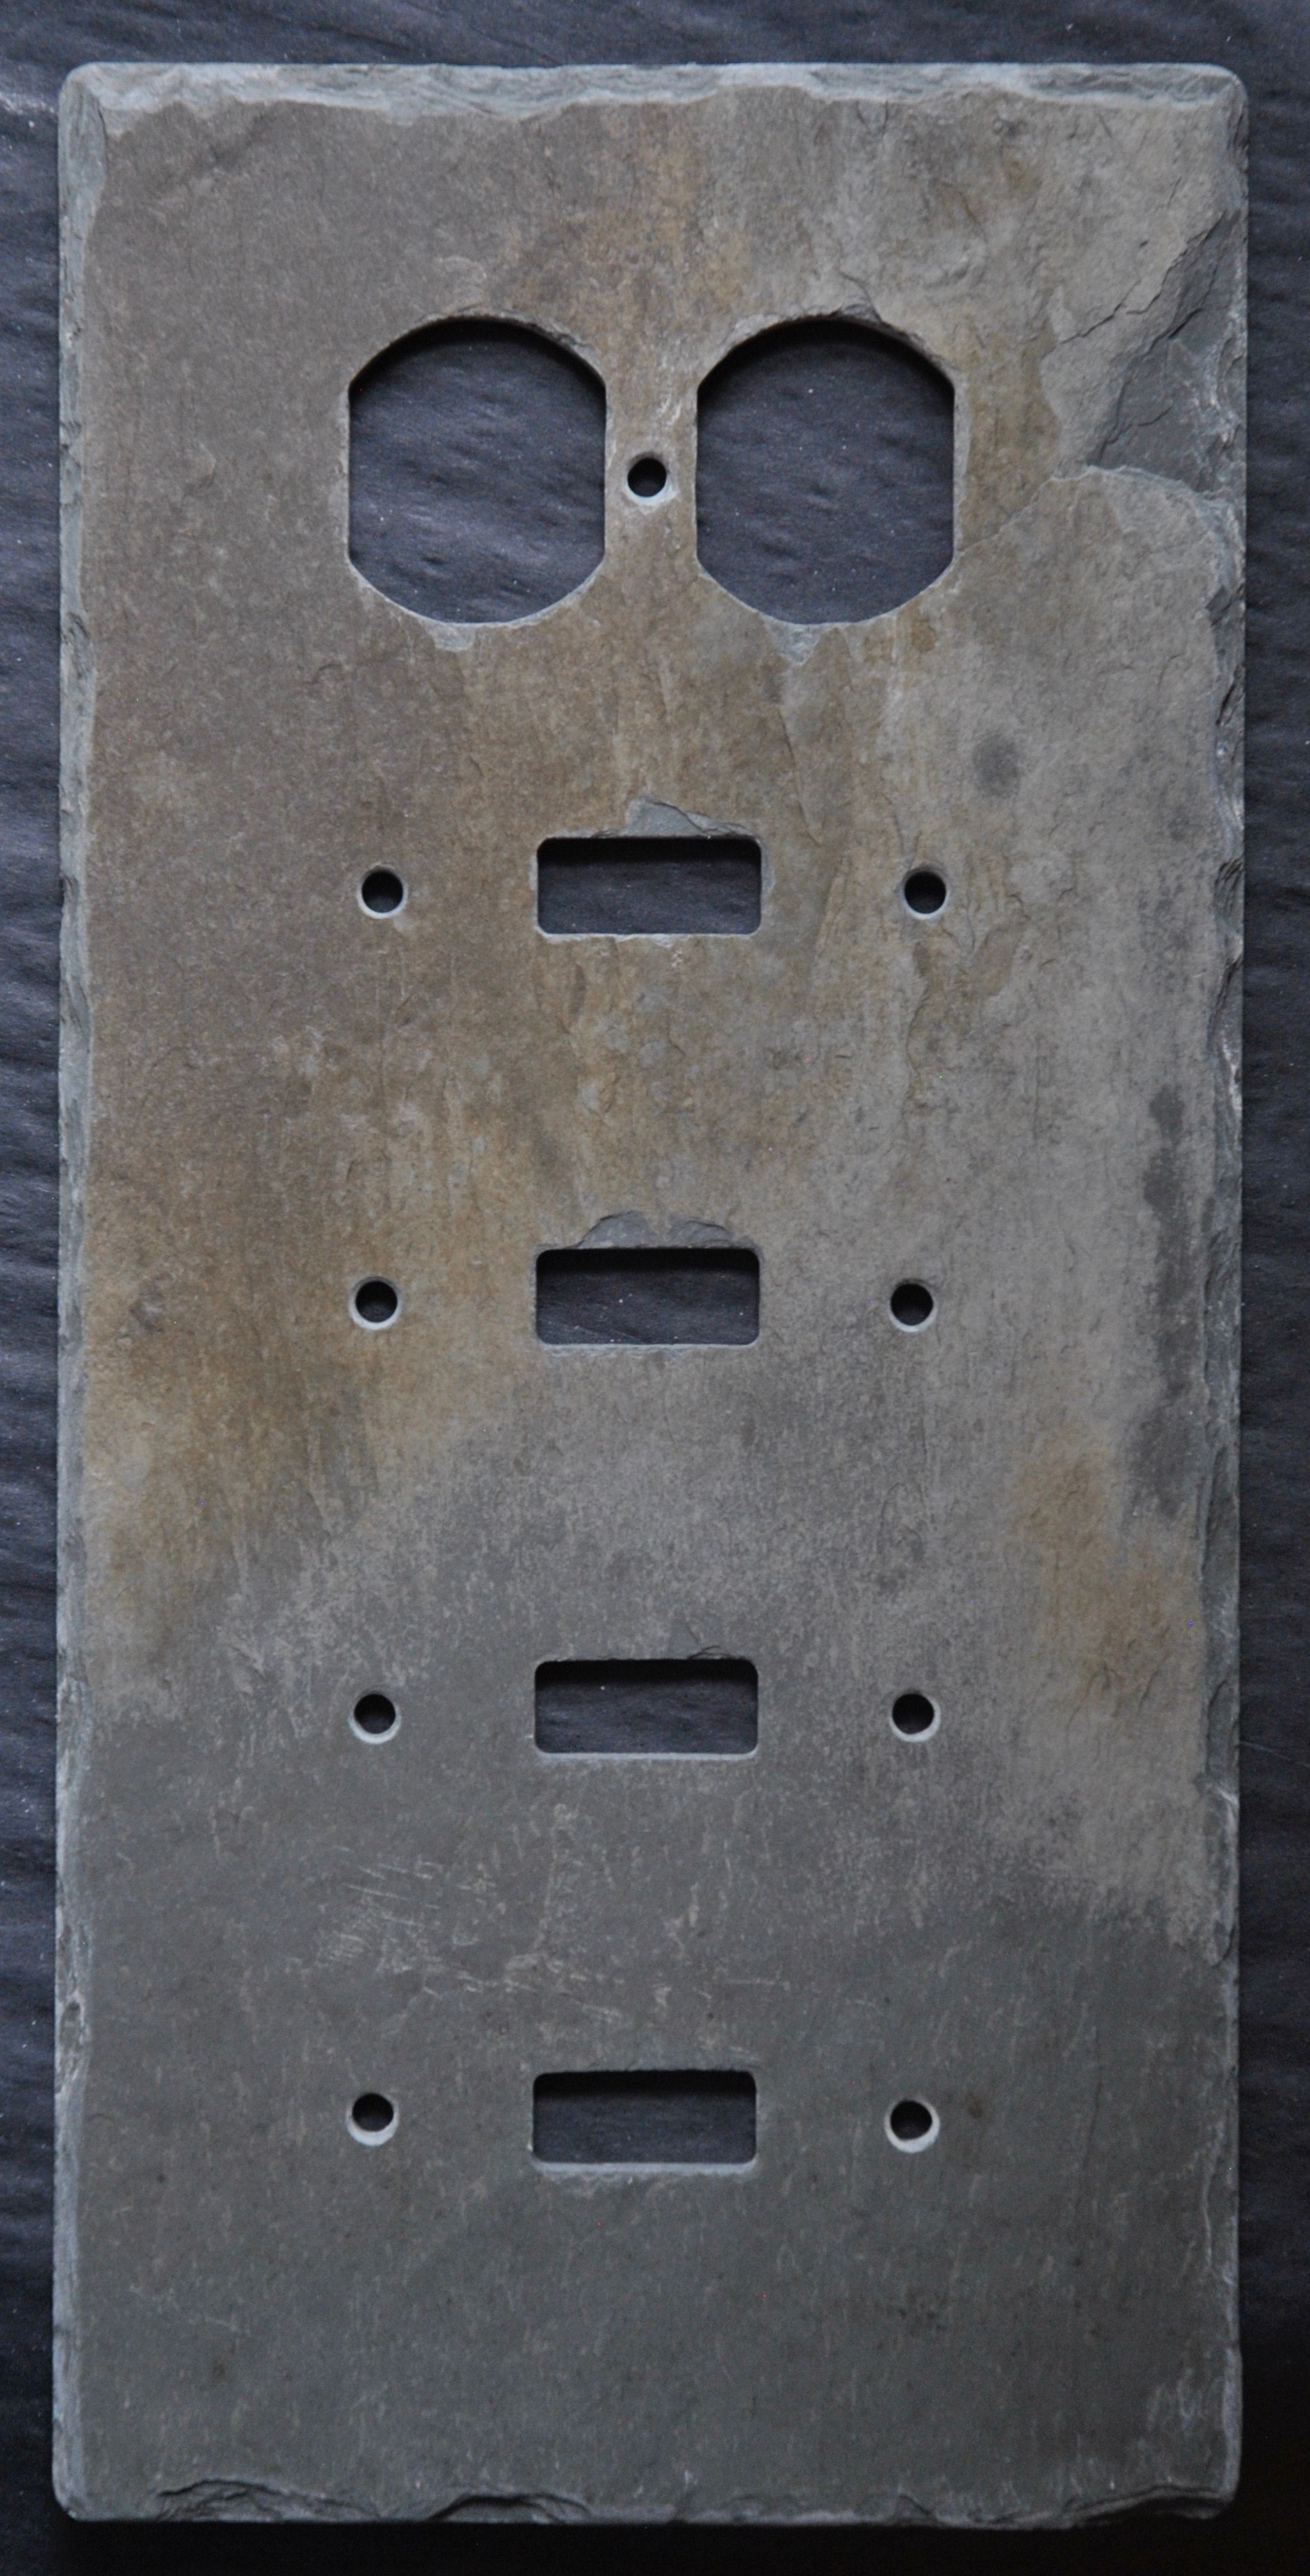 Pin On Light Switch Plates Outlet Covers By Slate Wall Plates